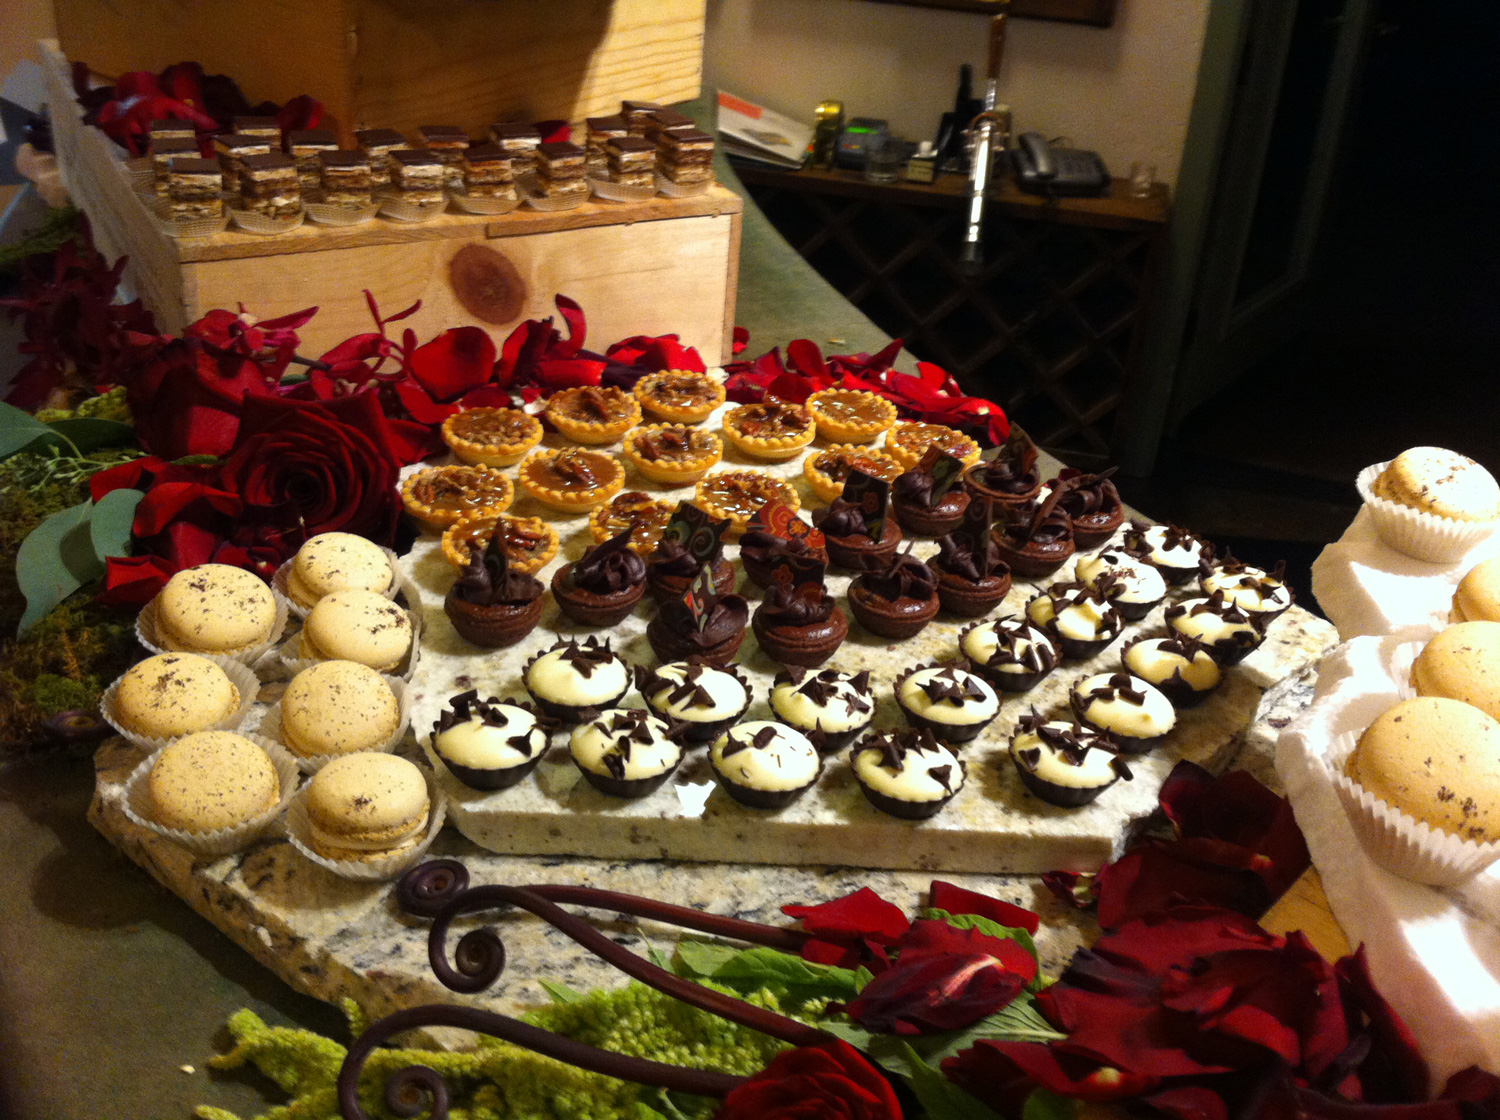 patisserie_angelica_dessert_display_8.jpg